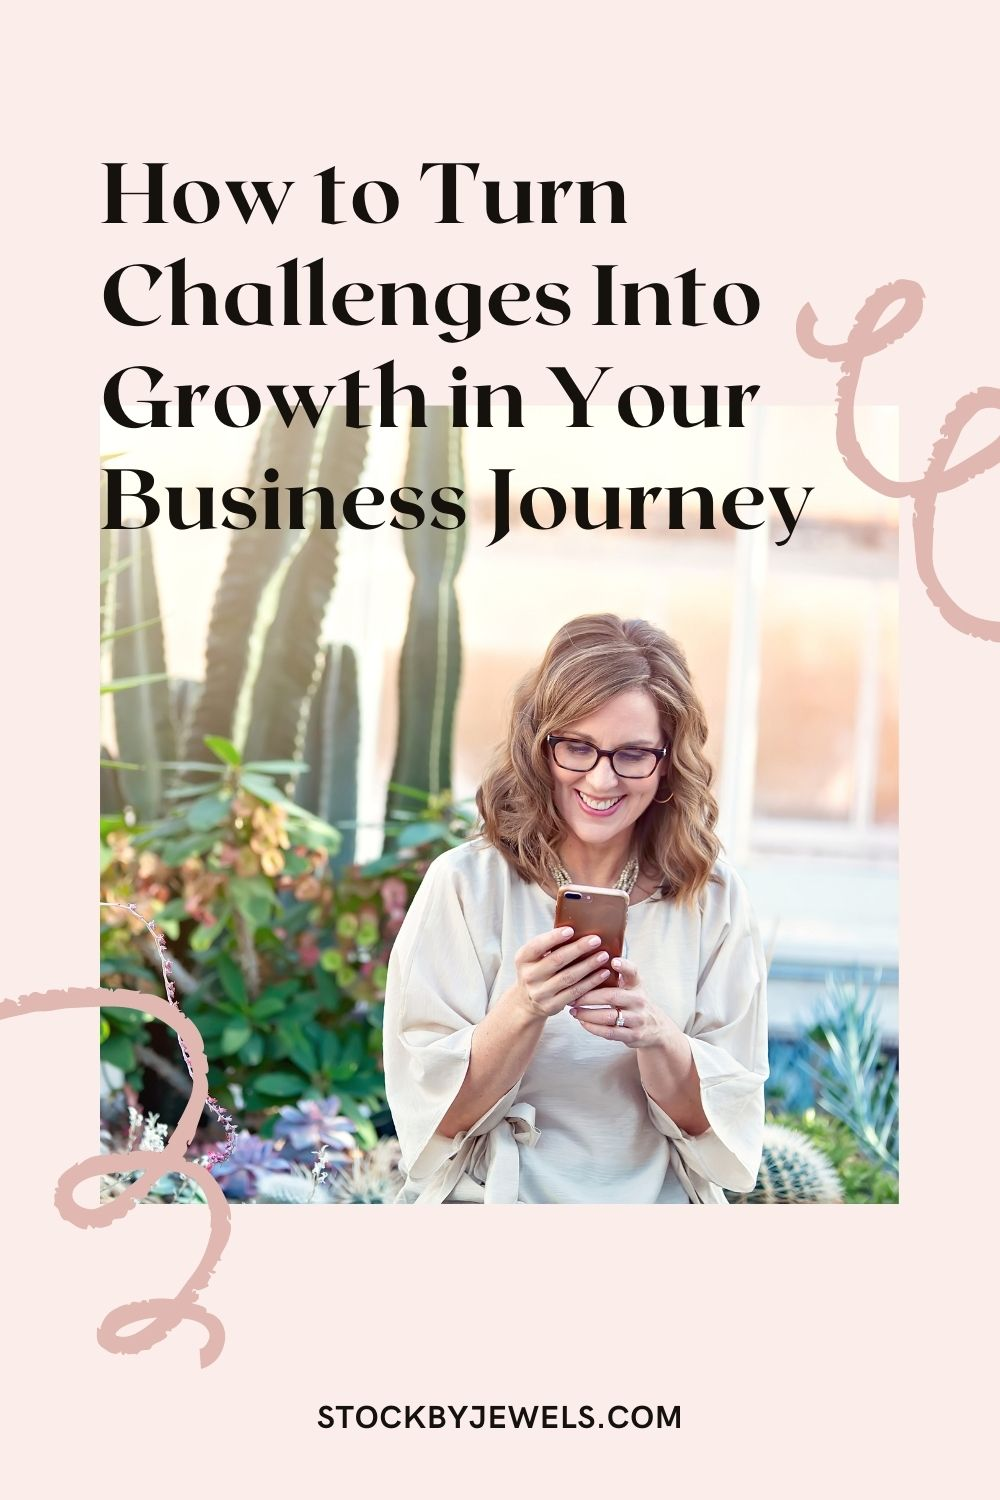 How to turn challenged into growth in your business journey